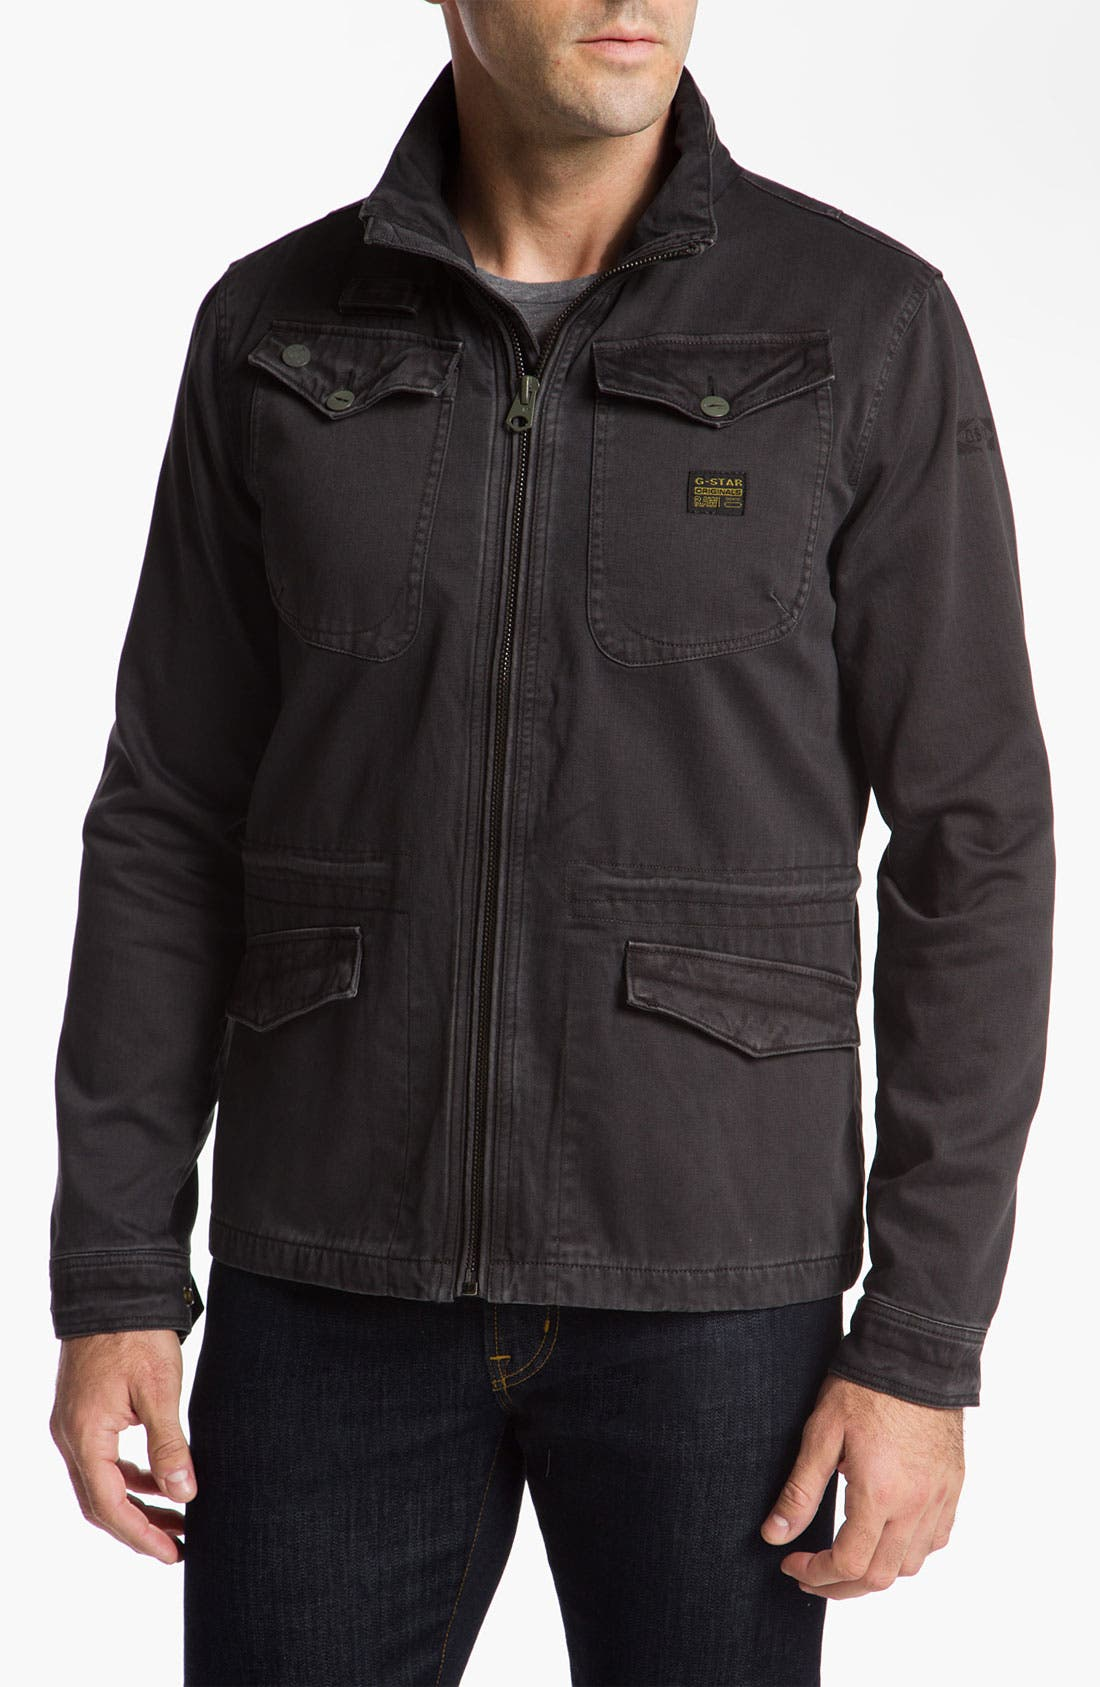 Alternate Image 1 Selected - G-Star Raw 'El Salvador' Cotton Jacket